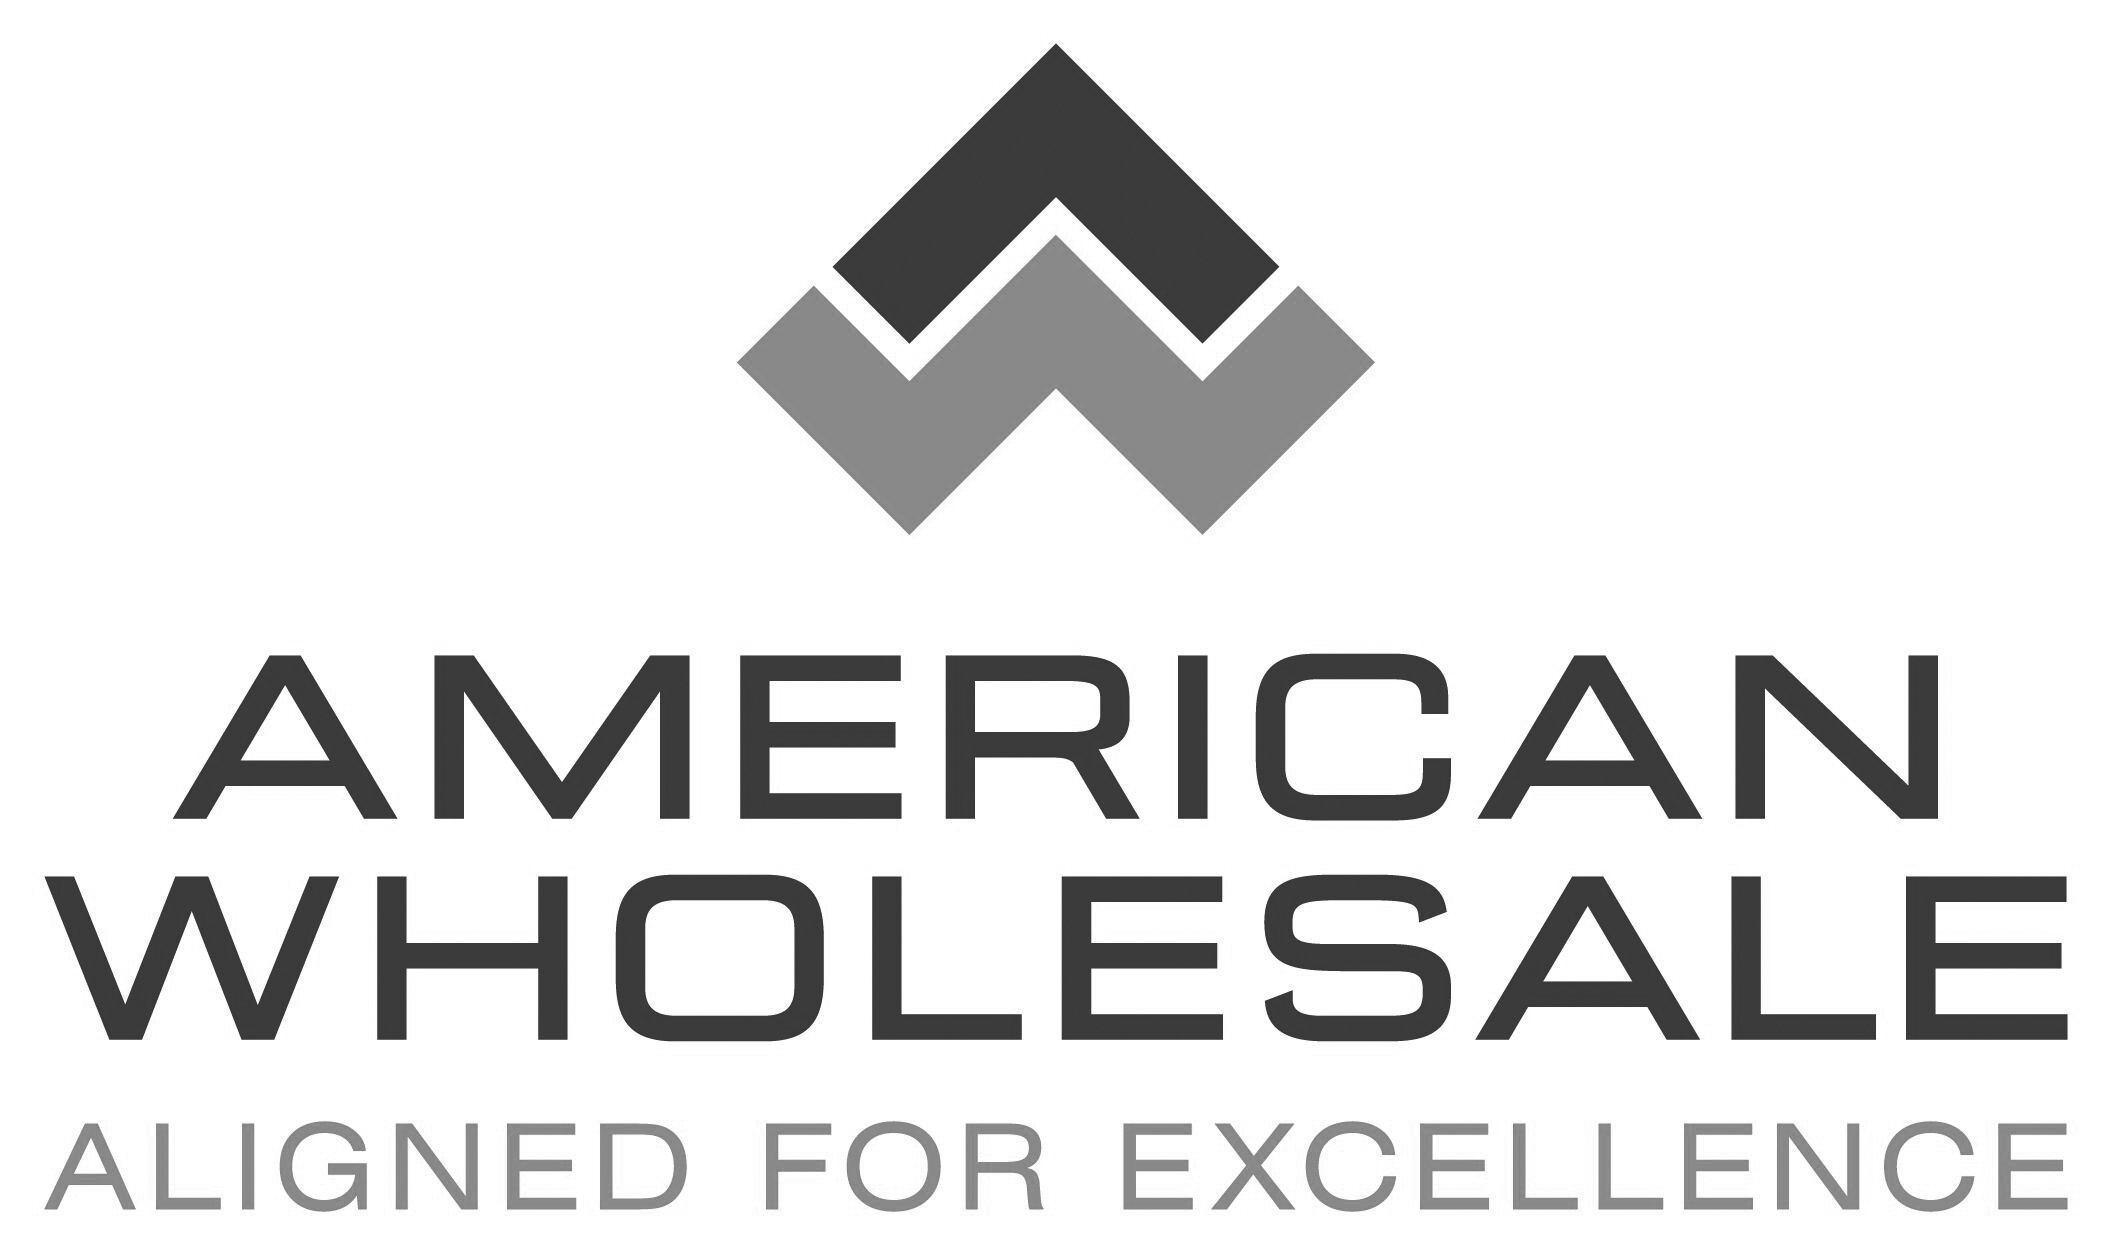 American Wholesale - Aligned for Excellence